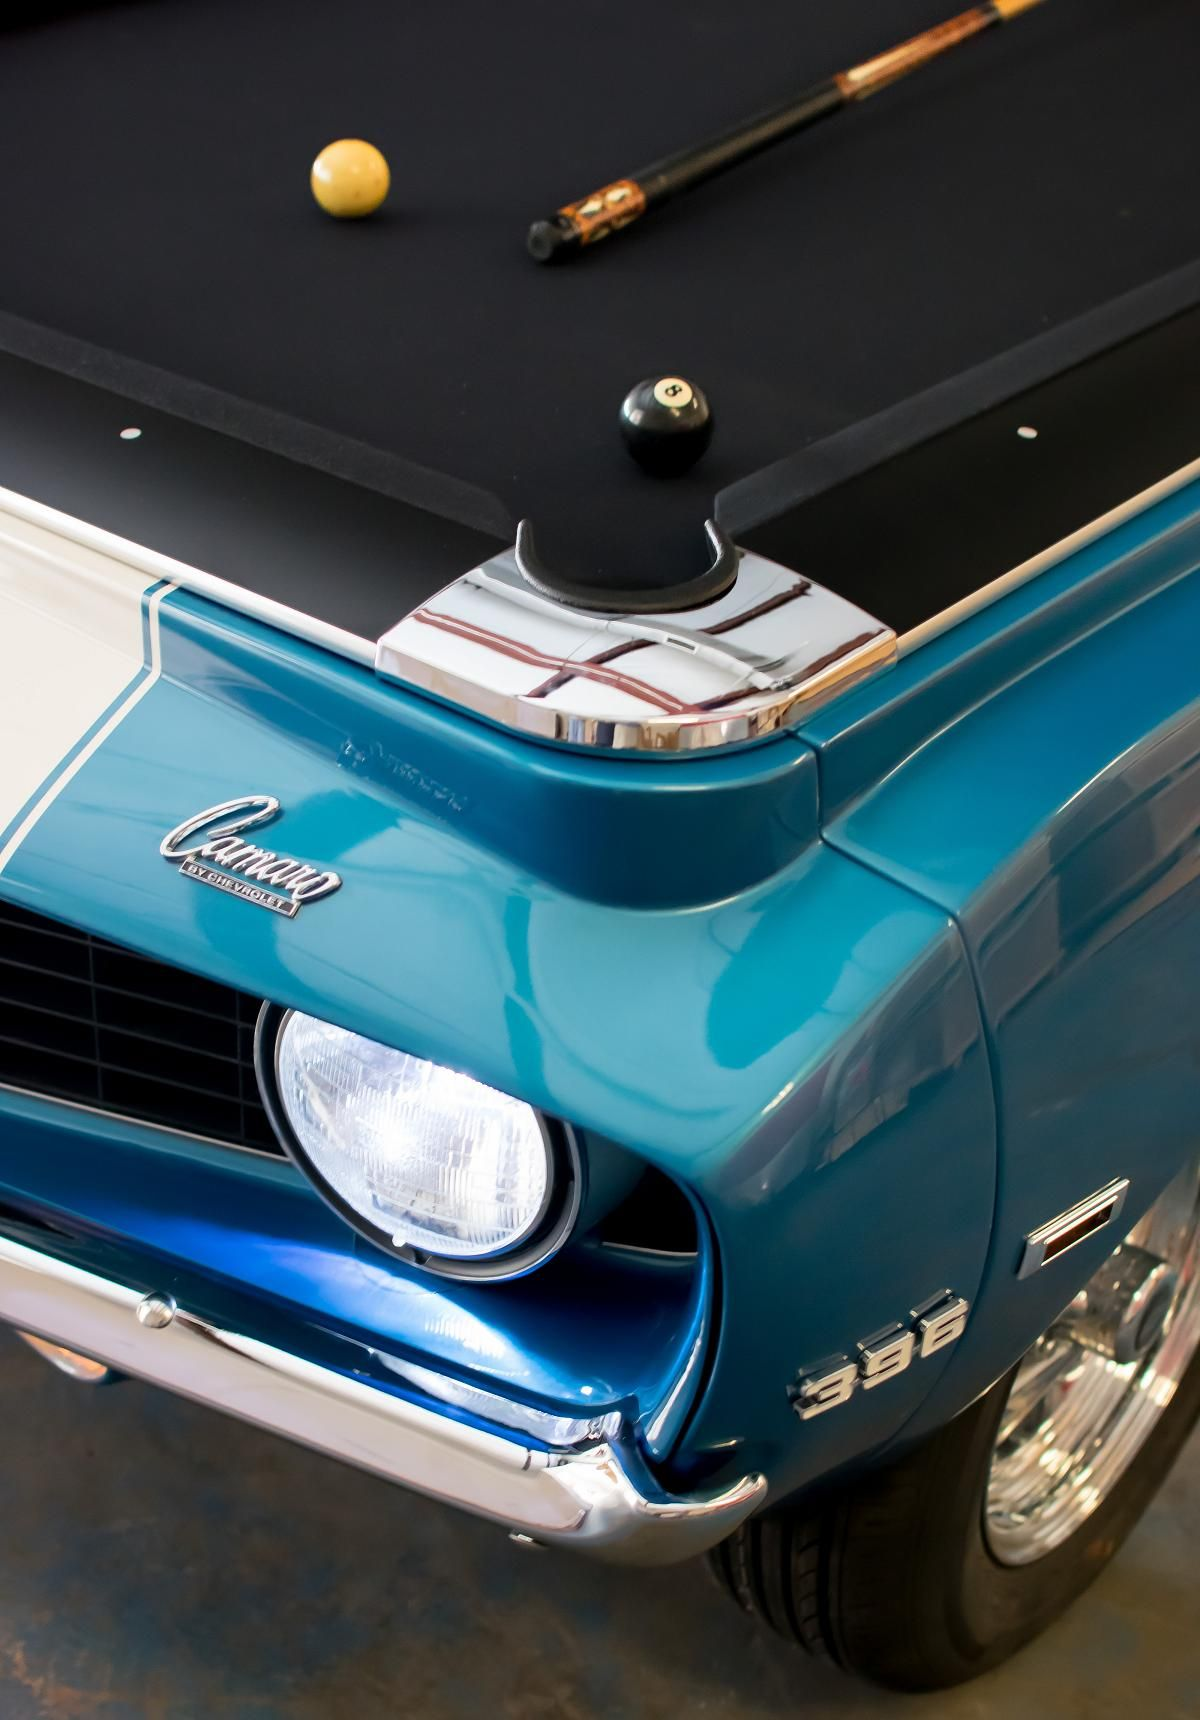 Fish tank pool table - 1969 Camaro Ss Pool Table By Www Carpooltables Com